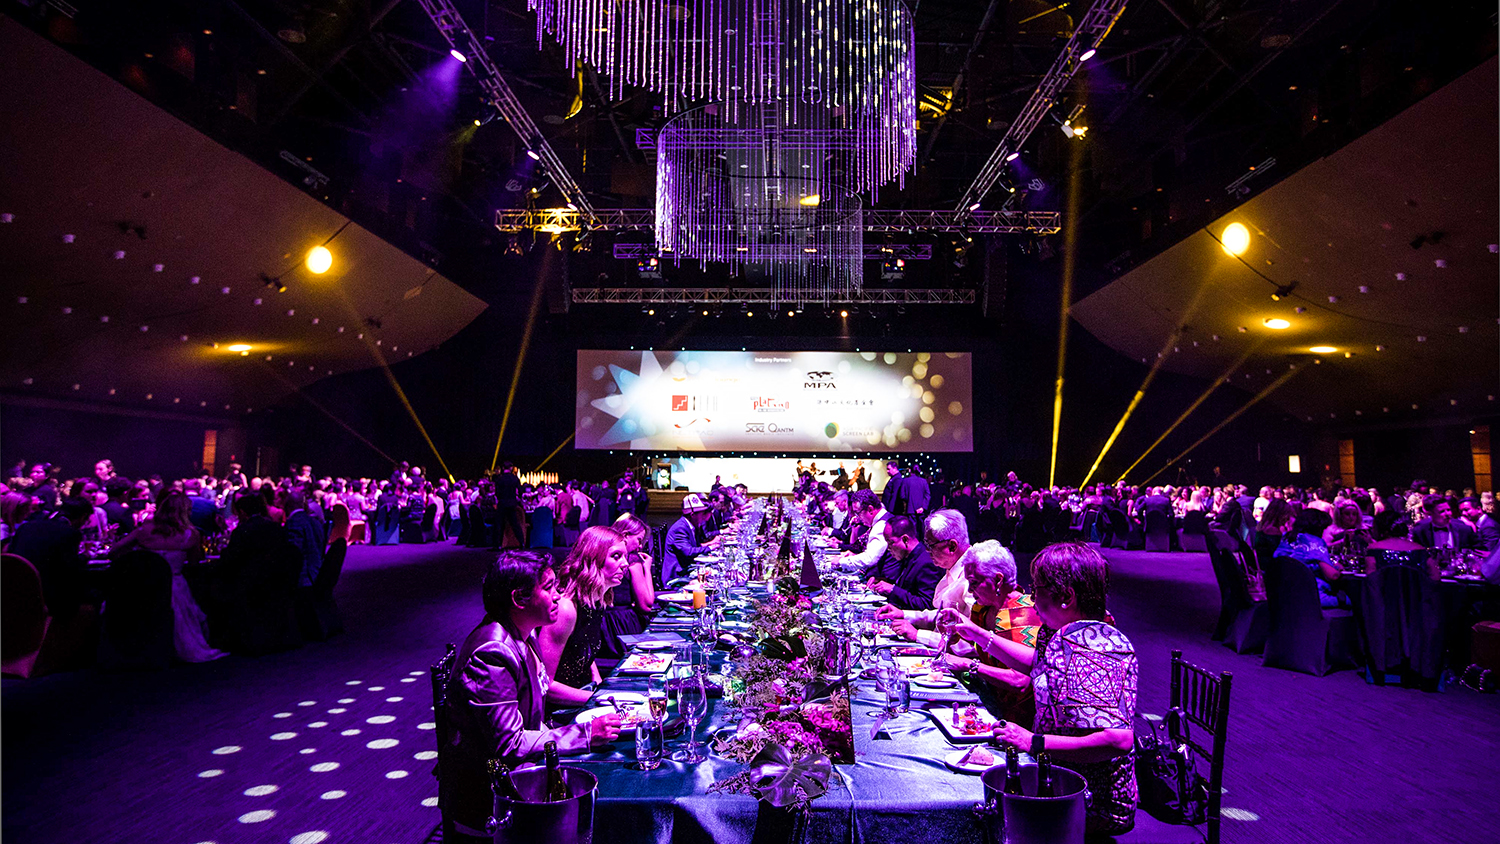 12th APSA at the Brisbane Convention and Exhibition Centre